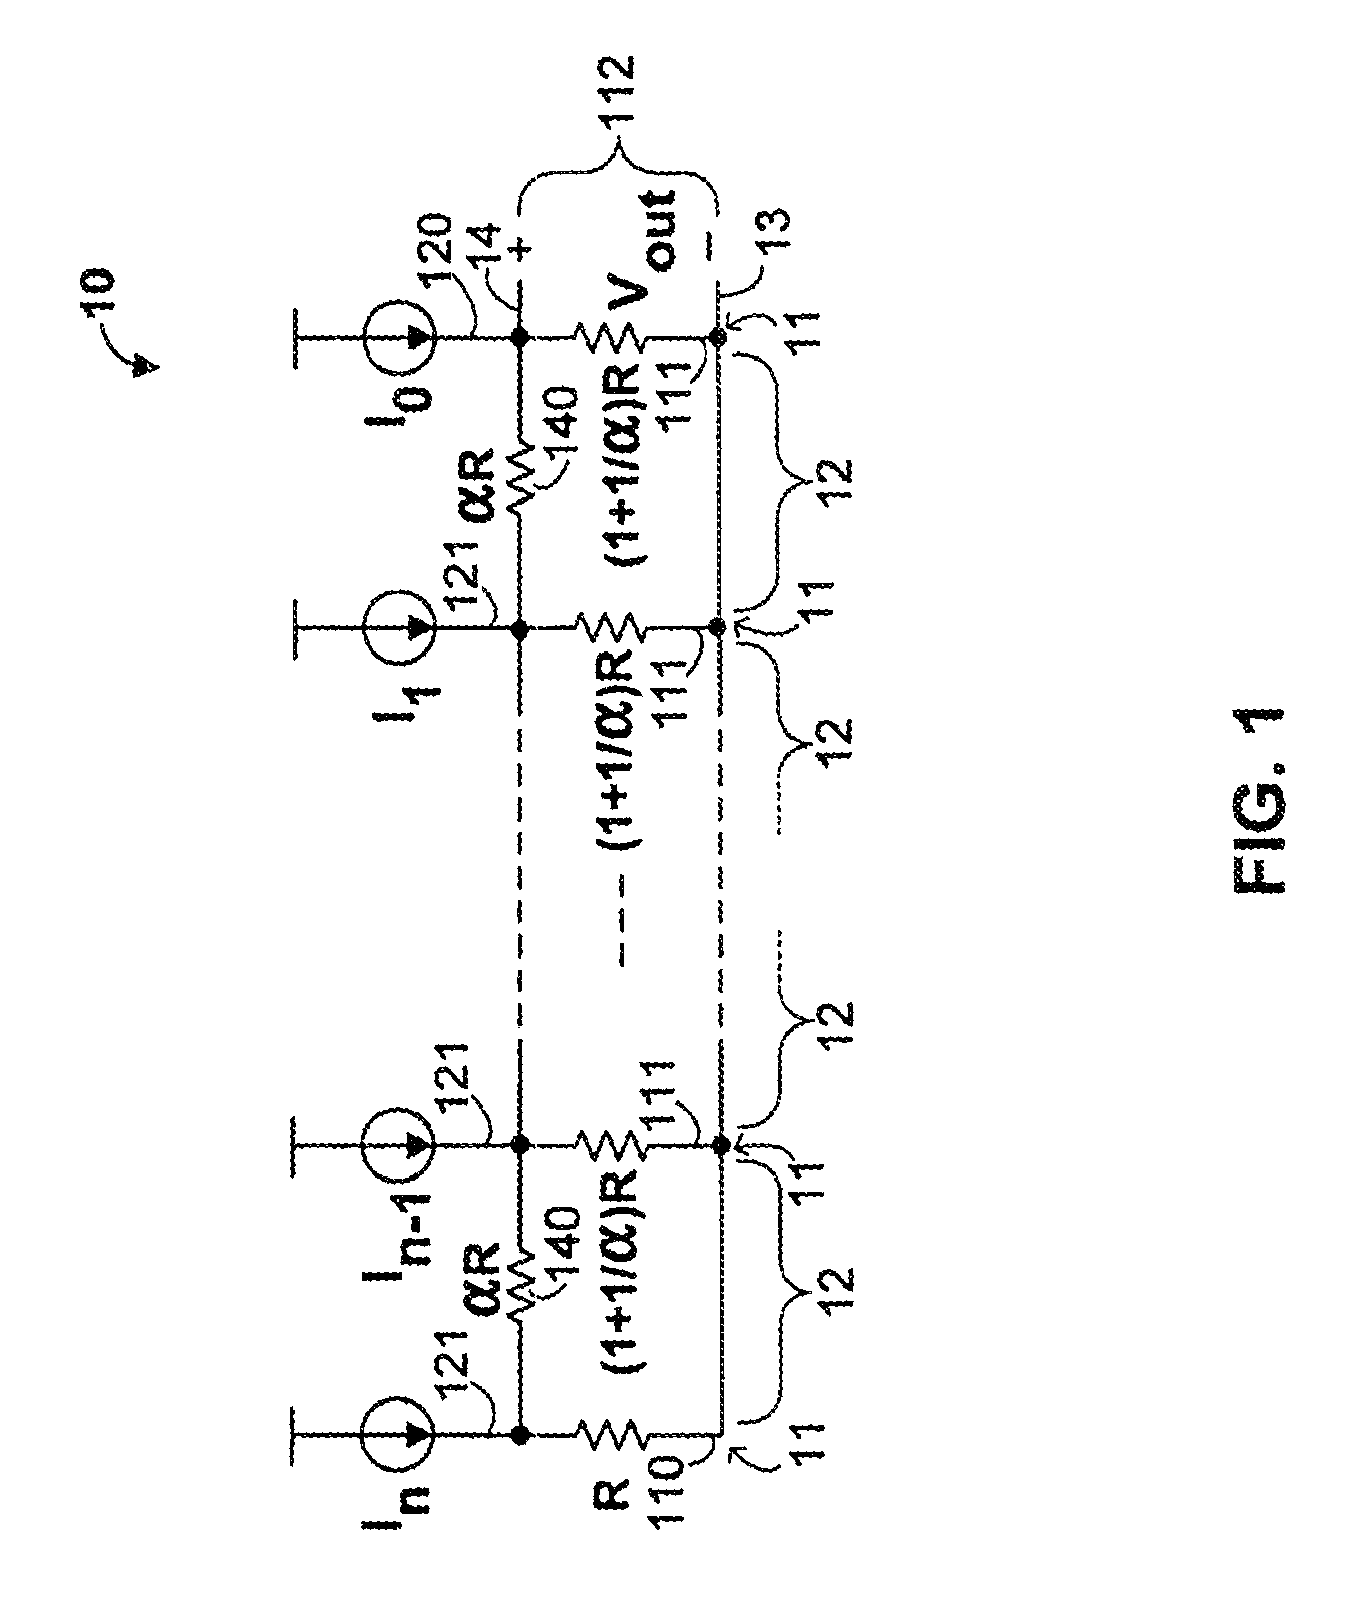 geometric ladder circuit with linear-in-db transfer function